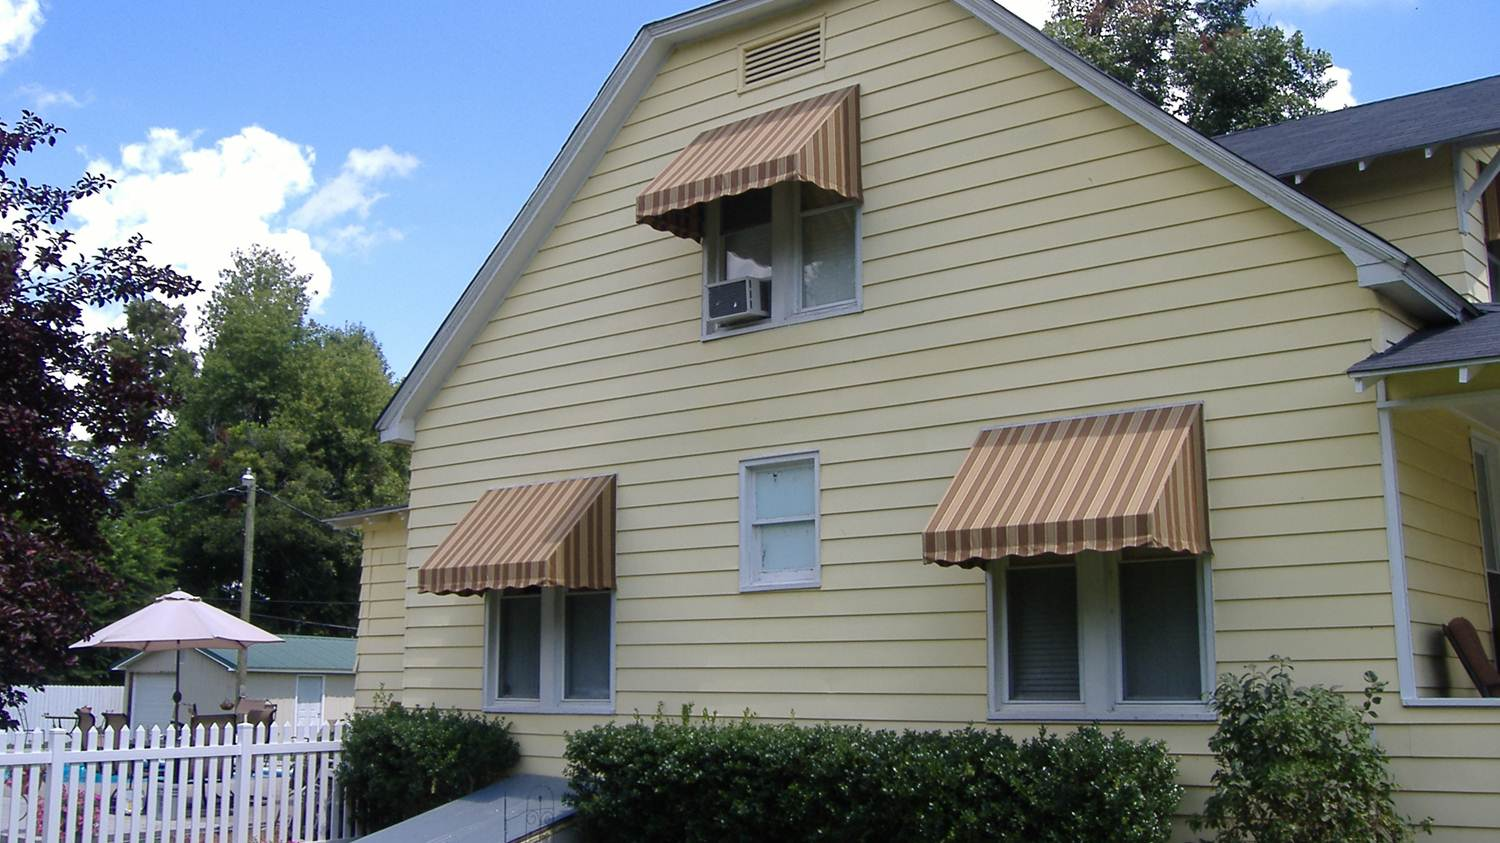 Residential Awnings Delta Tent & Awning pany